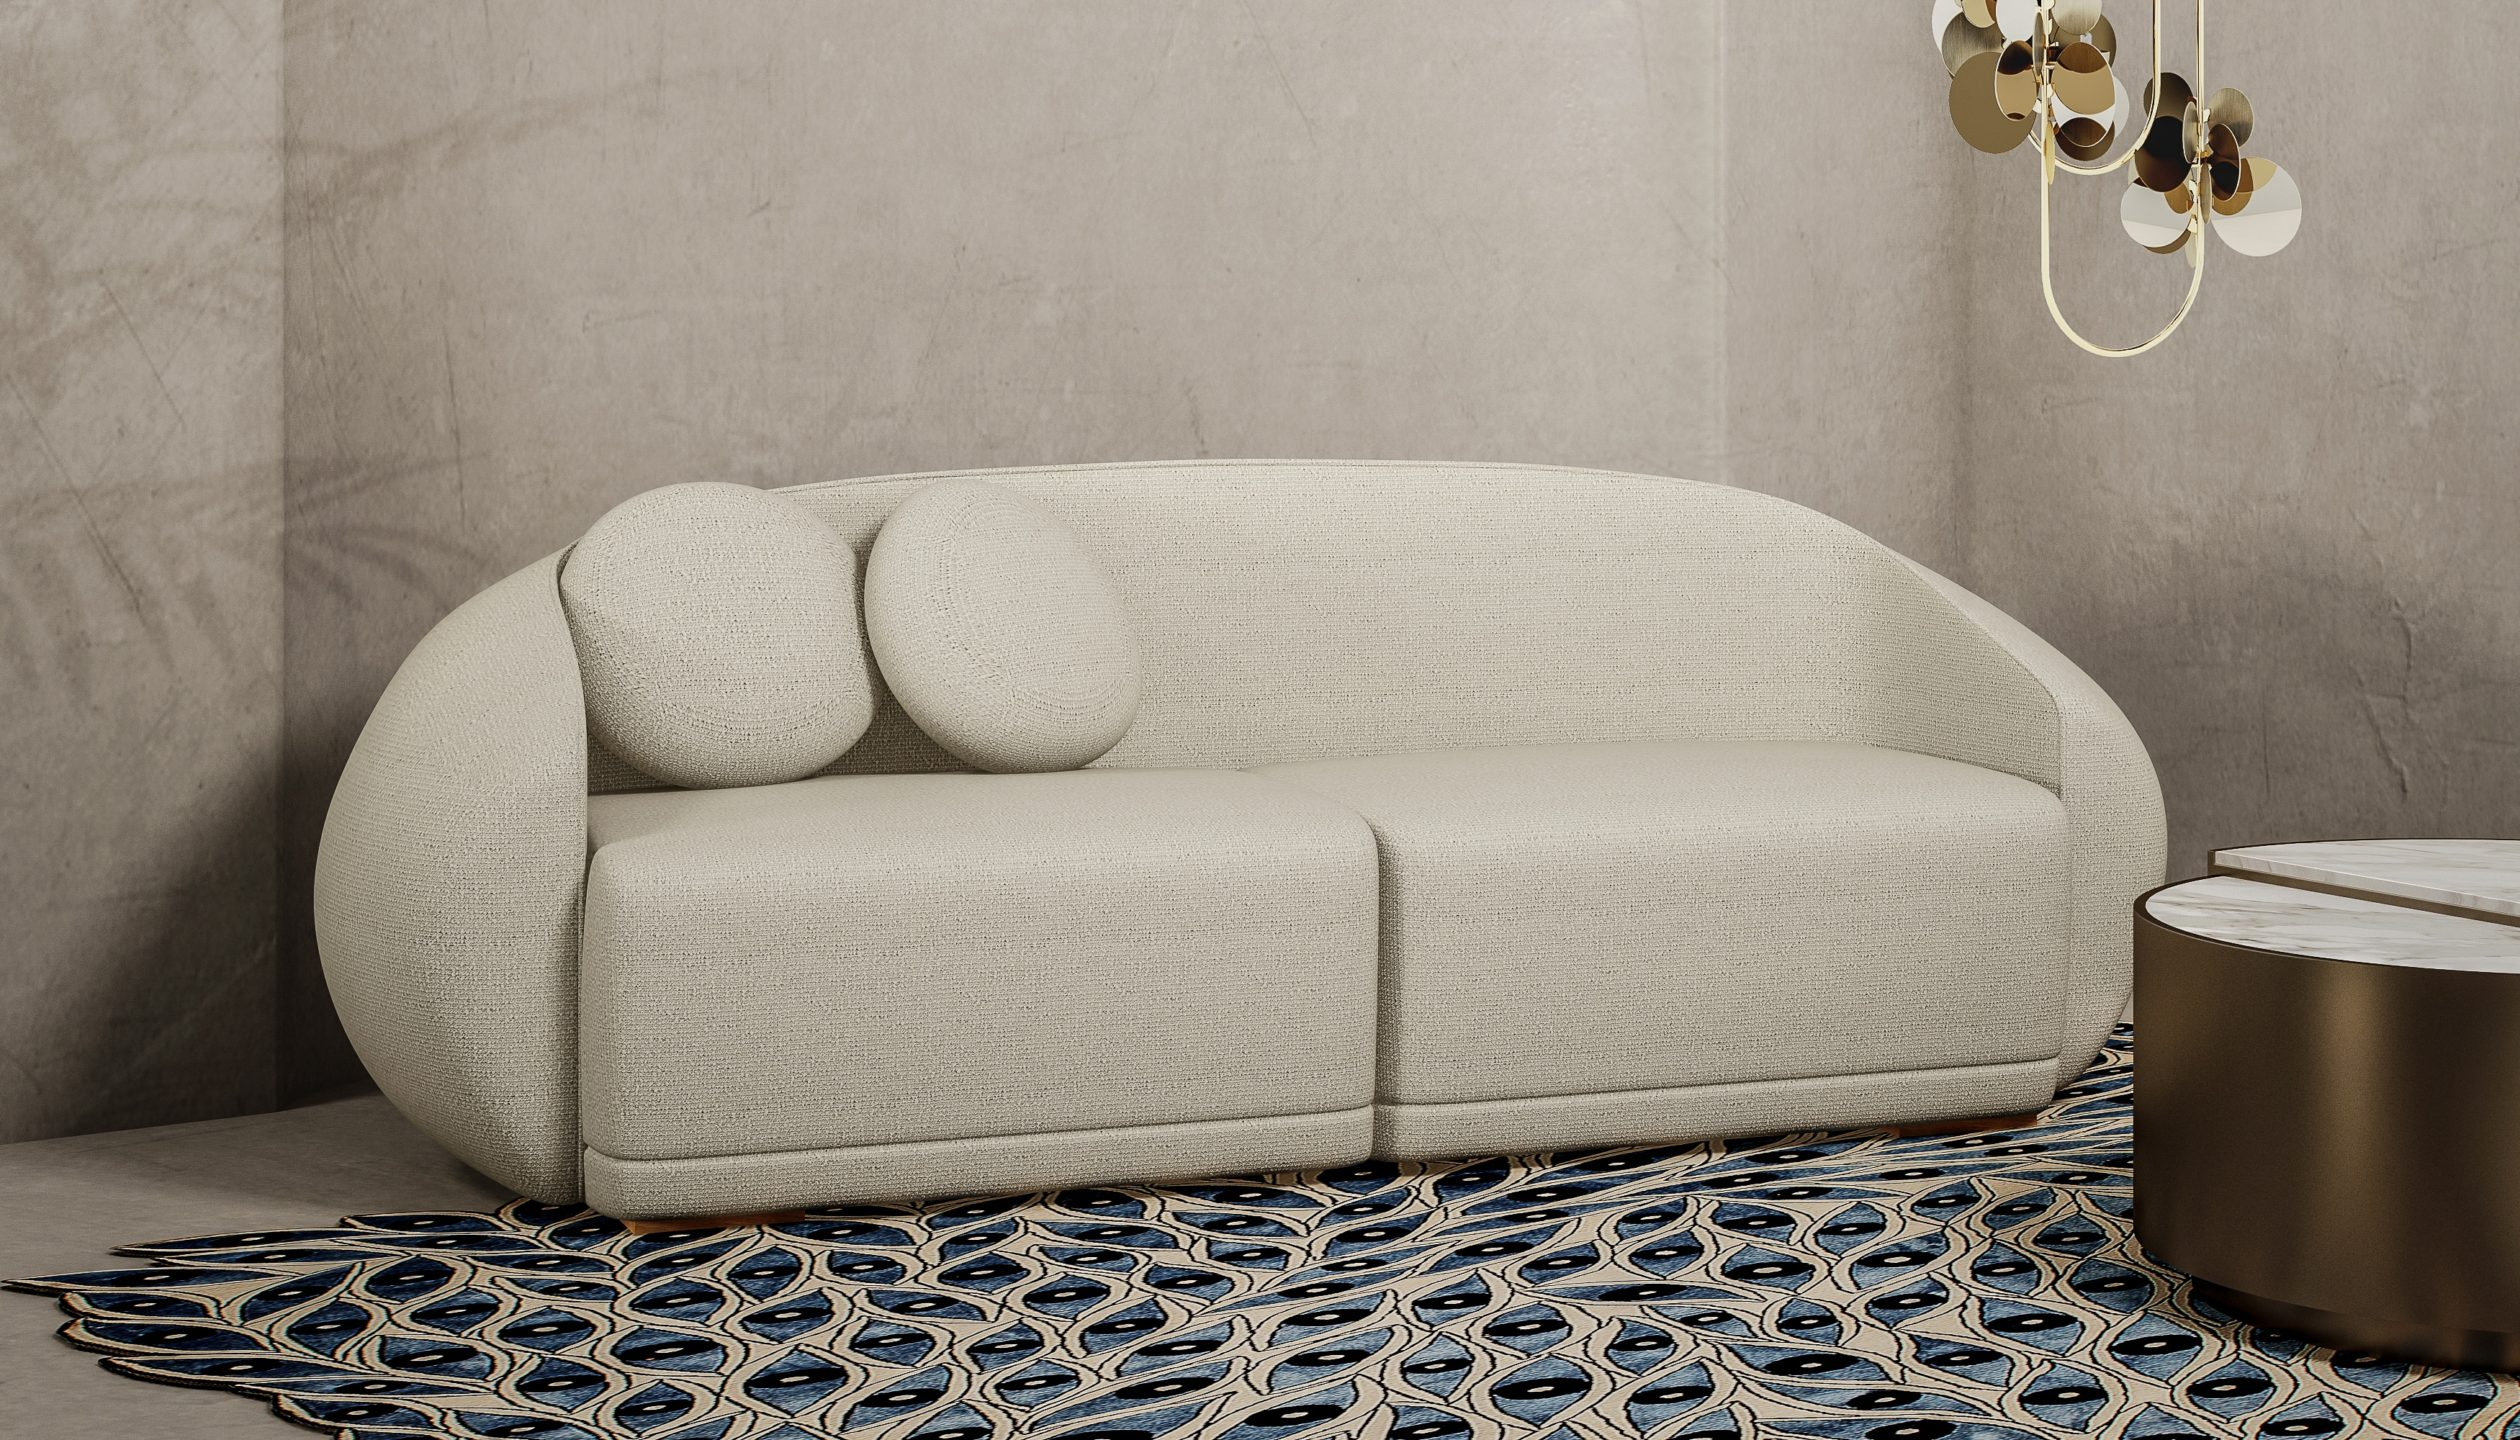 Curved Sofas You'll Love - Peggy Sofa